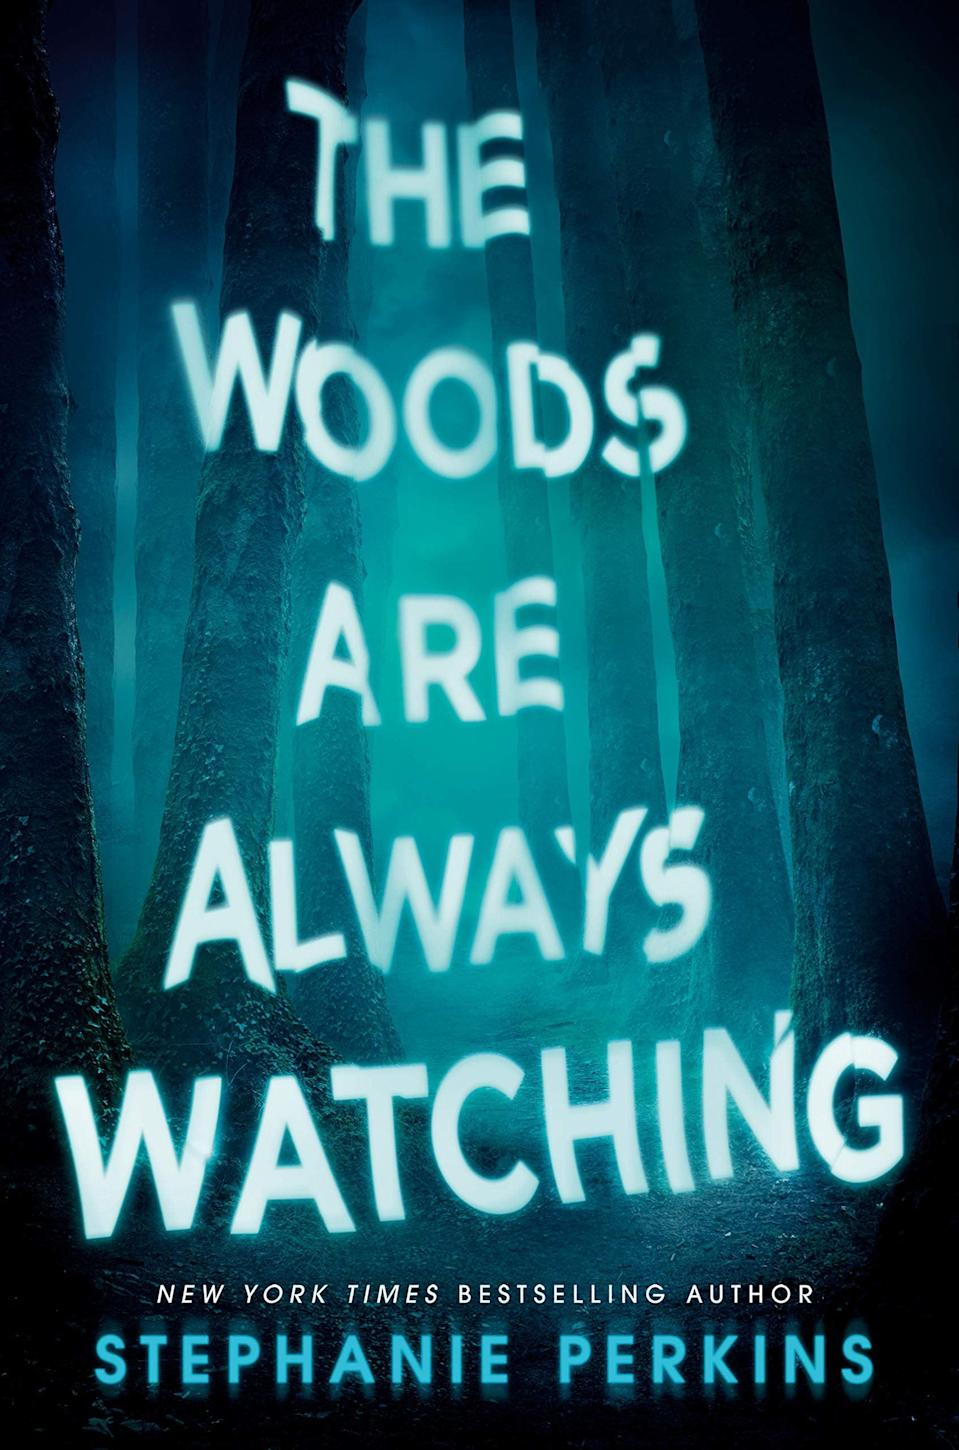 <p>Stephanie Perkins returns to the world of horror with <span><strong>The Woods Are Always Watching</strong></span>. When two girls head into the woods on a backpacking trip, things quickly go wrong when they cross paths with a serial killer.</p> <p><em>Out Aug. 3</em></p>